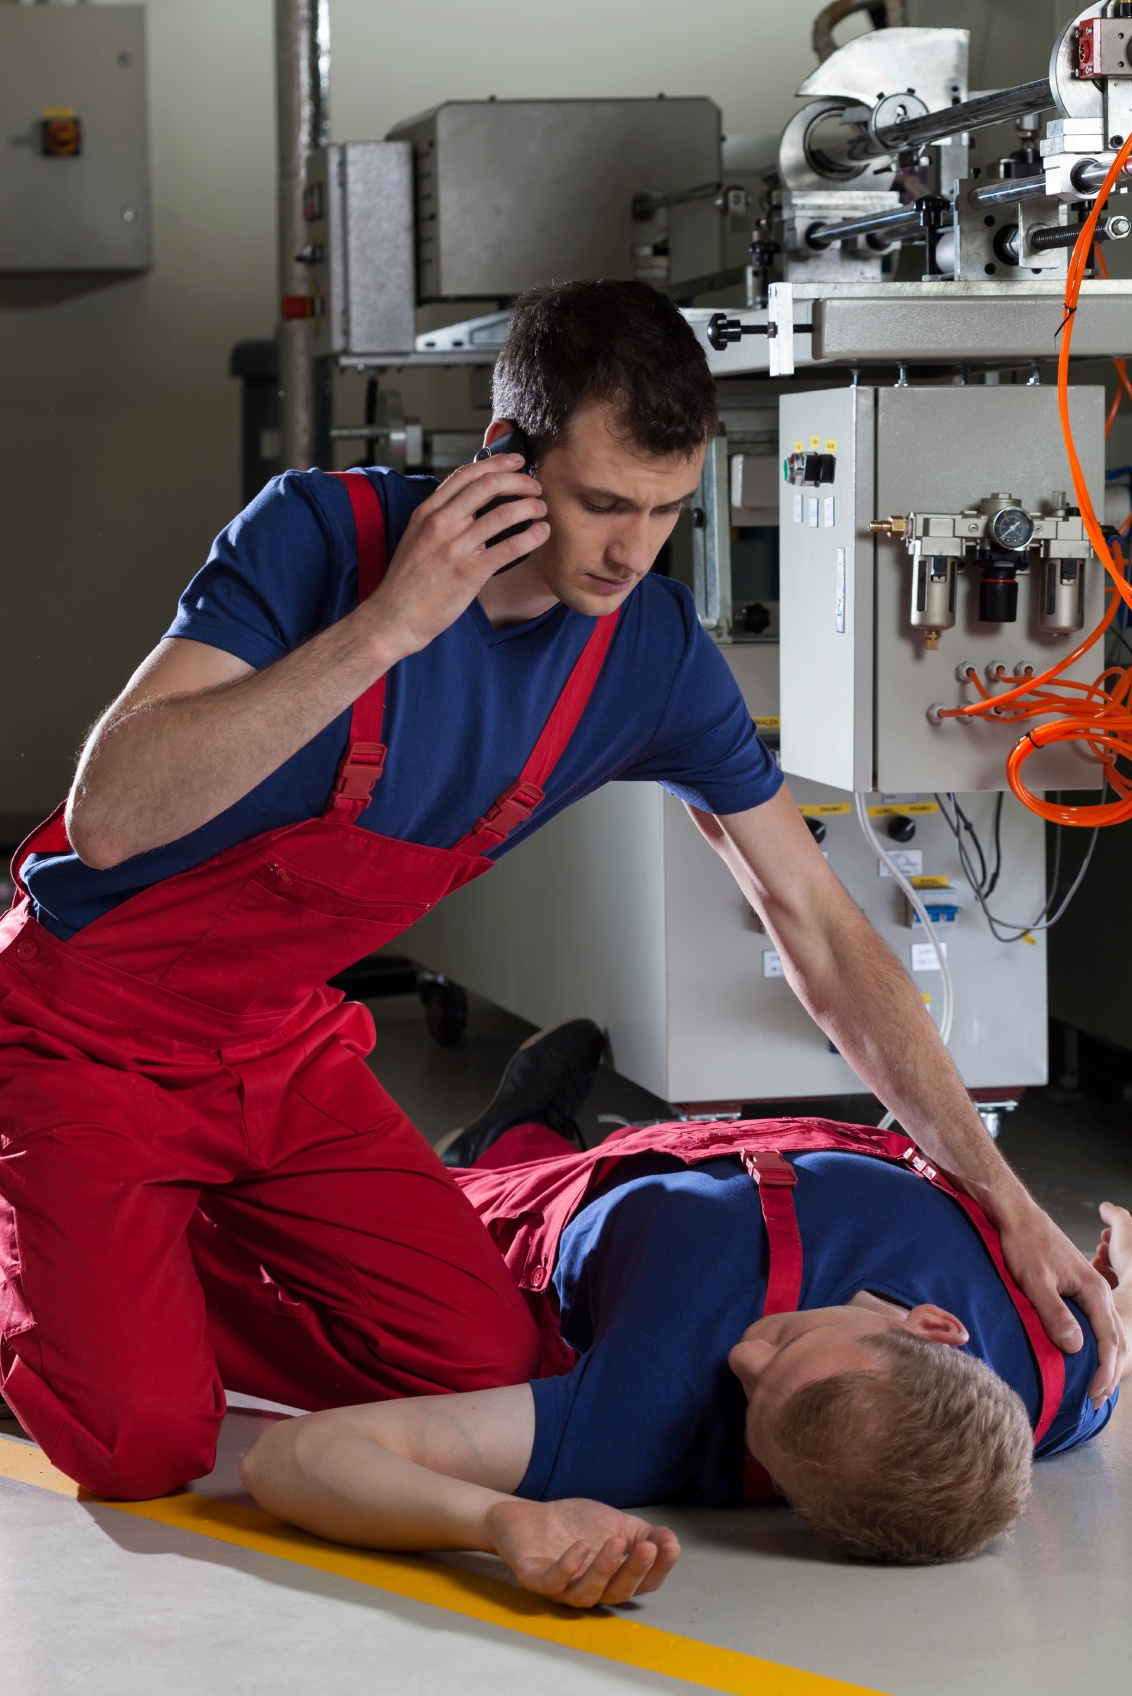 Top 3 Occupations That Cause The Most Work Injuries